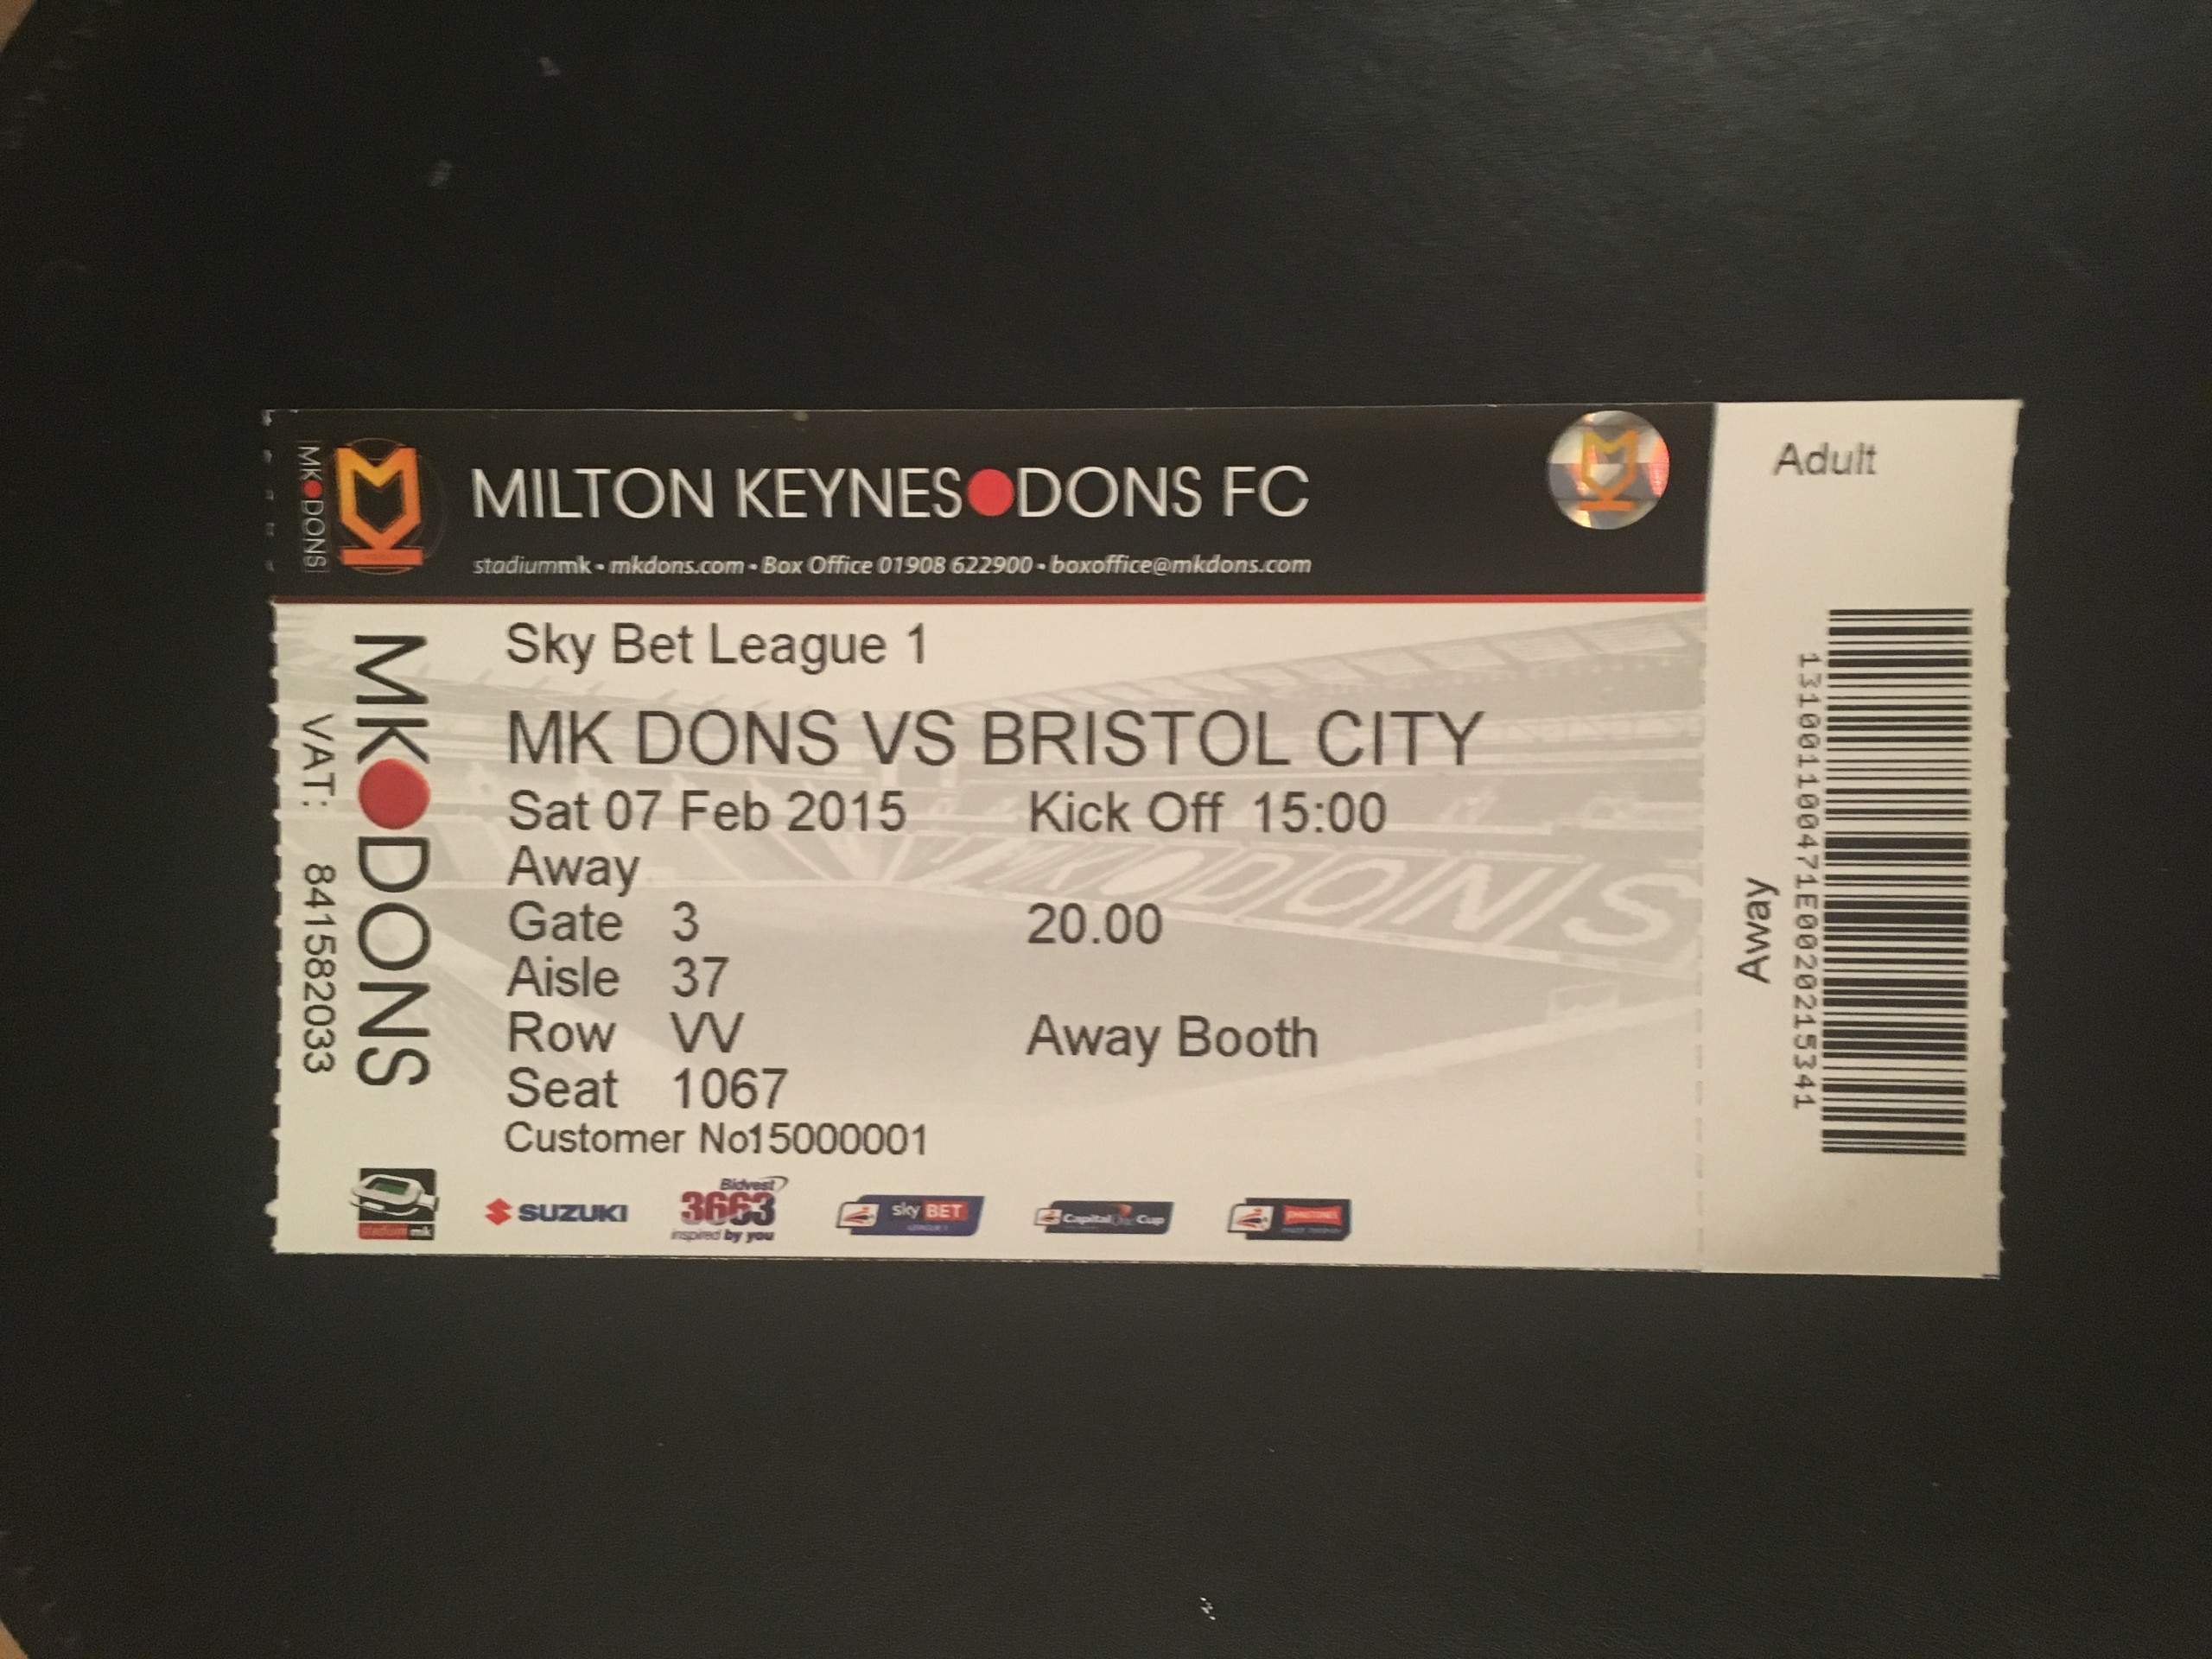 MK Dons v Bristol City 07-02-2015 Ticket